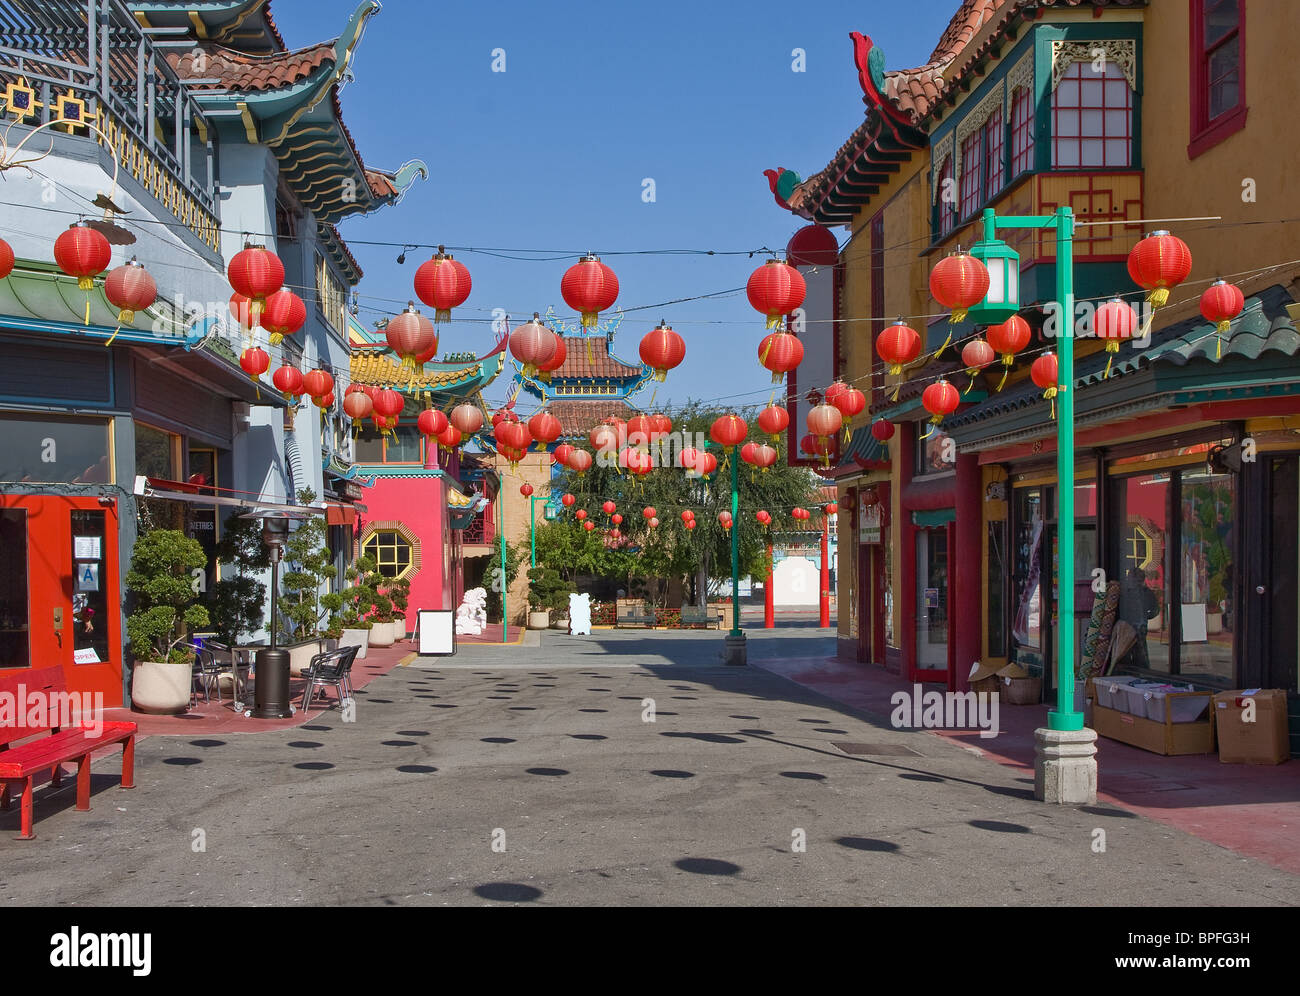 Street view of china town in Los Angeles, California, USA Stock Photo